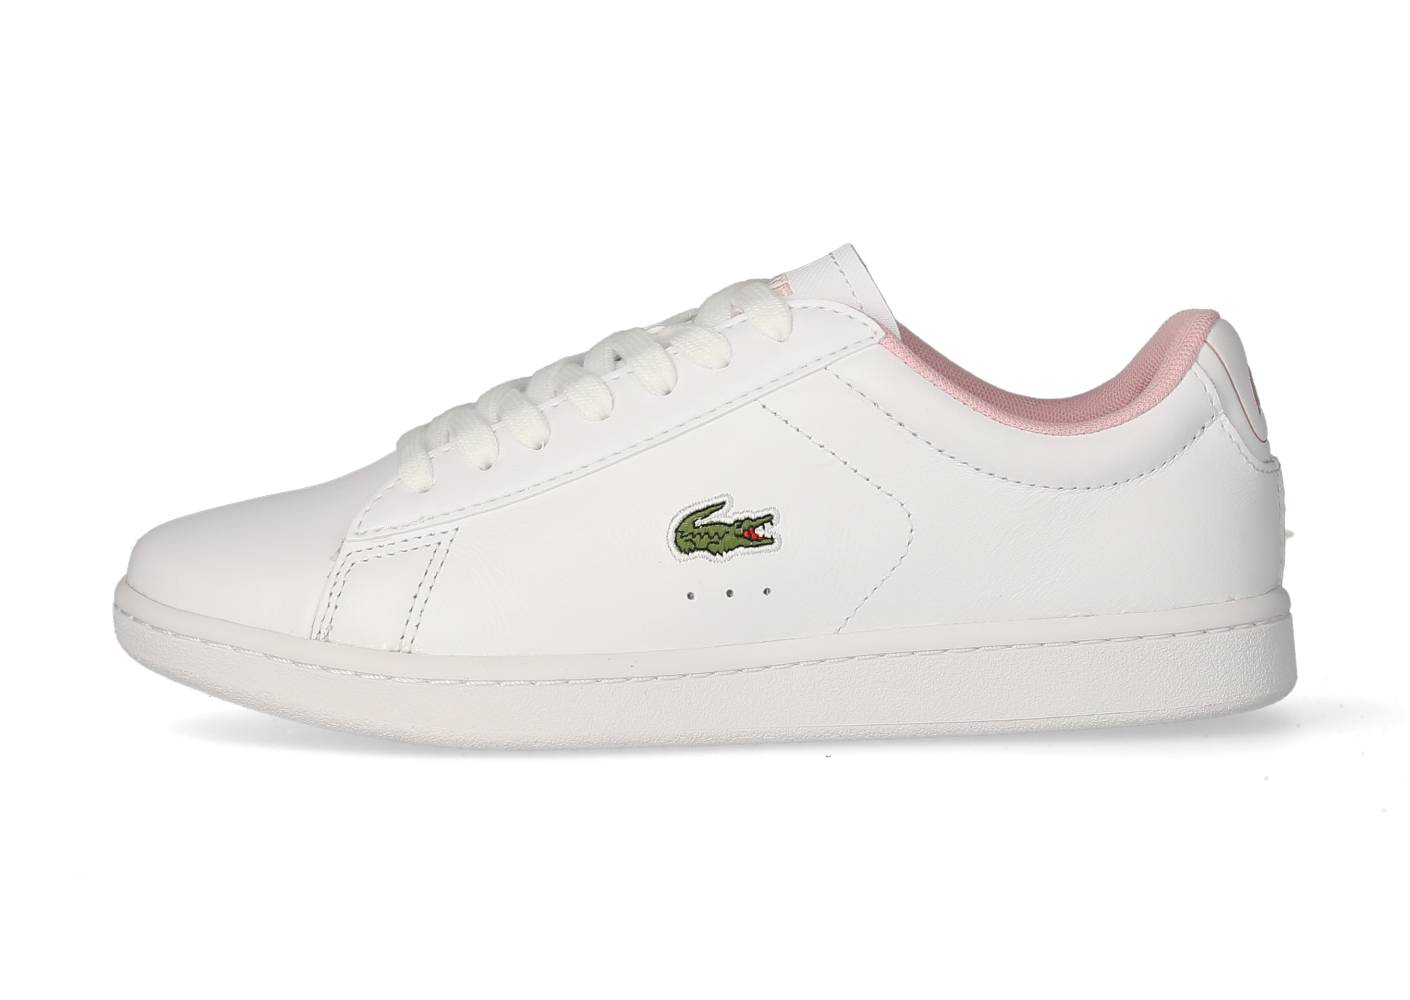 Lacoste Femme Carnaby Evo Blanche Et Rose Tennis 39